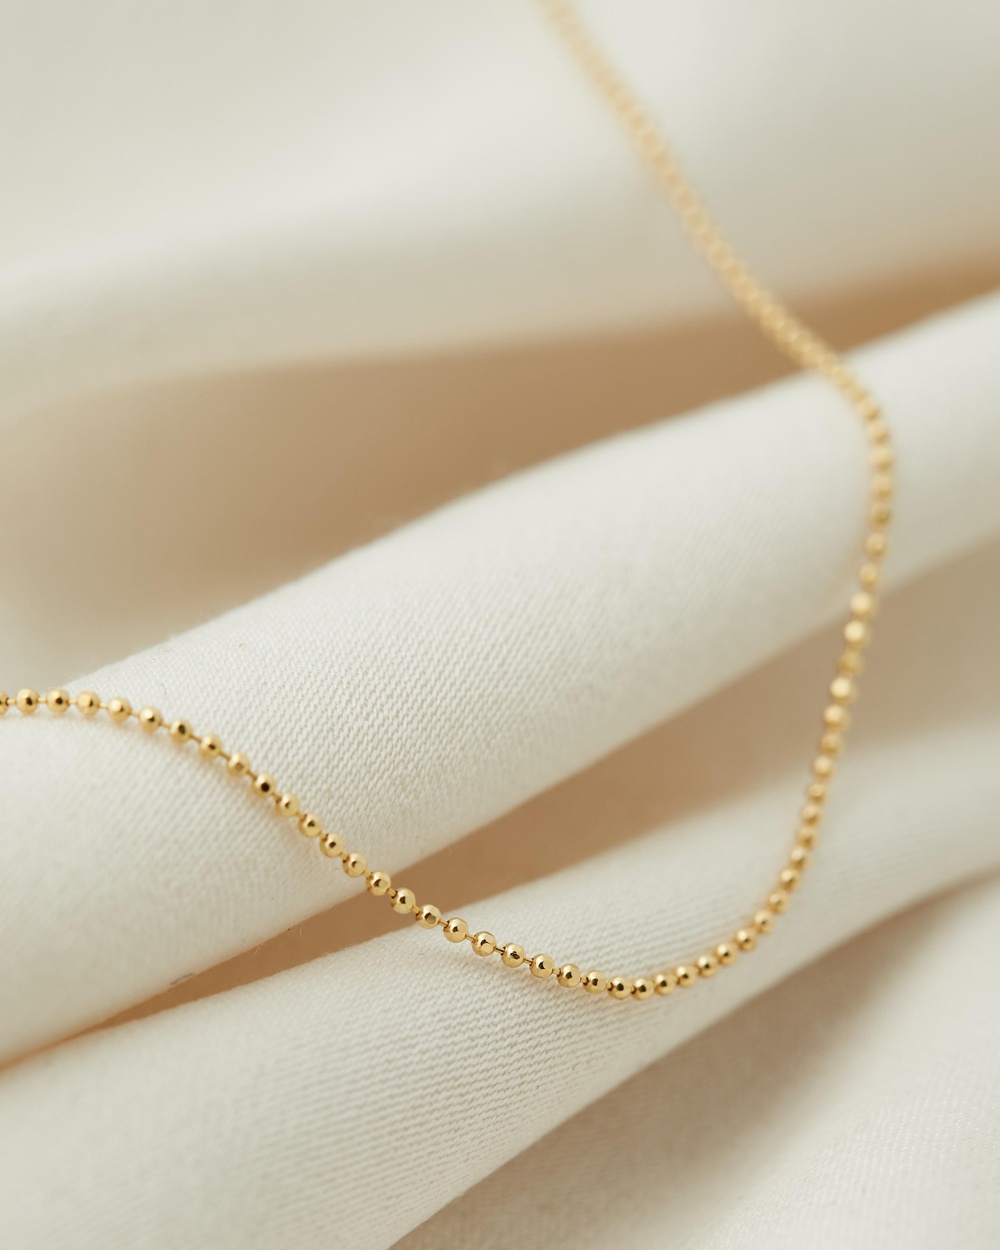 Medley Polka Chain Jewellery 18ct Fine Yellow Gold Plated